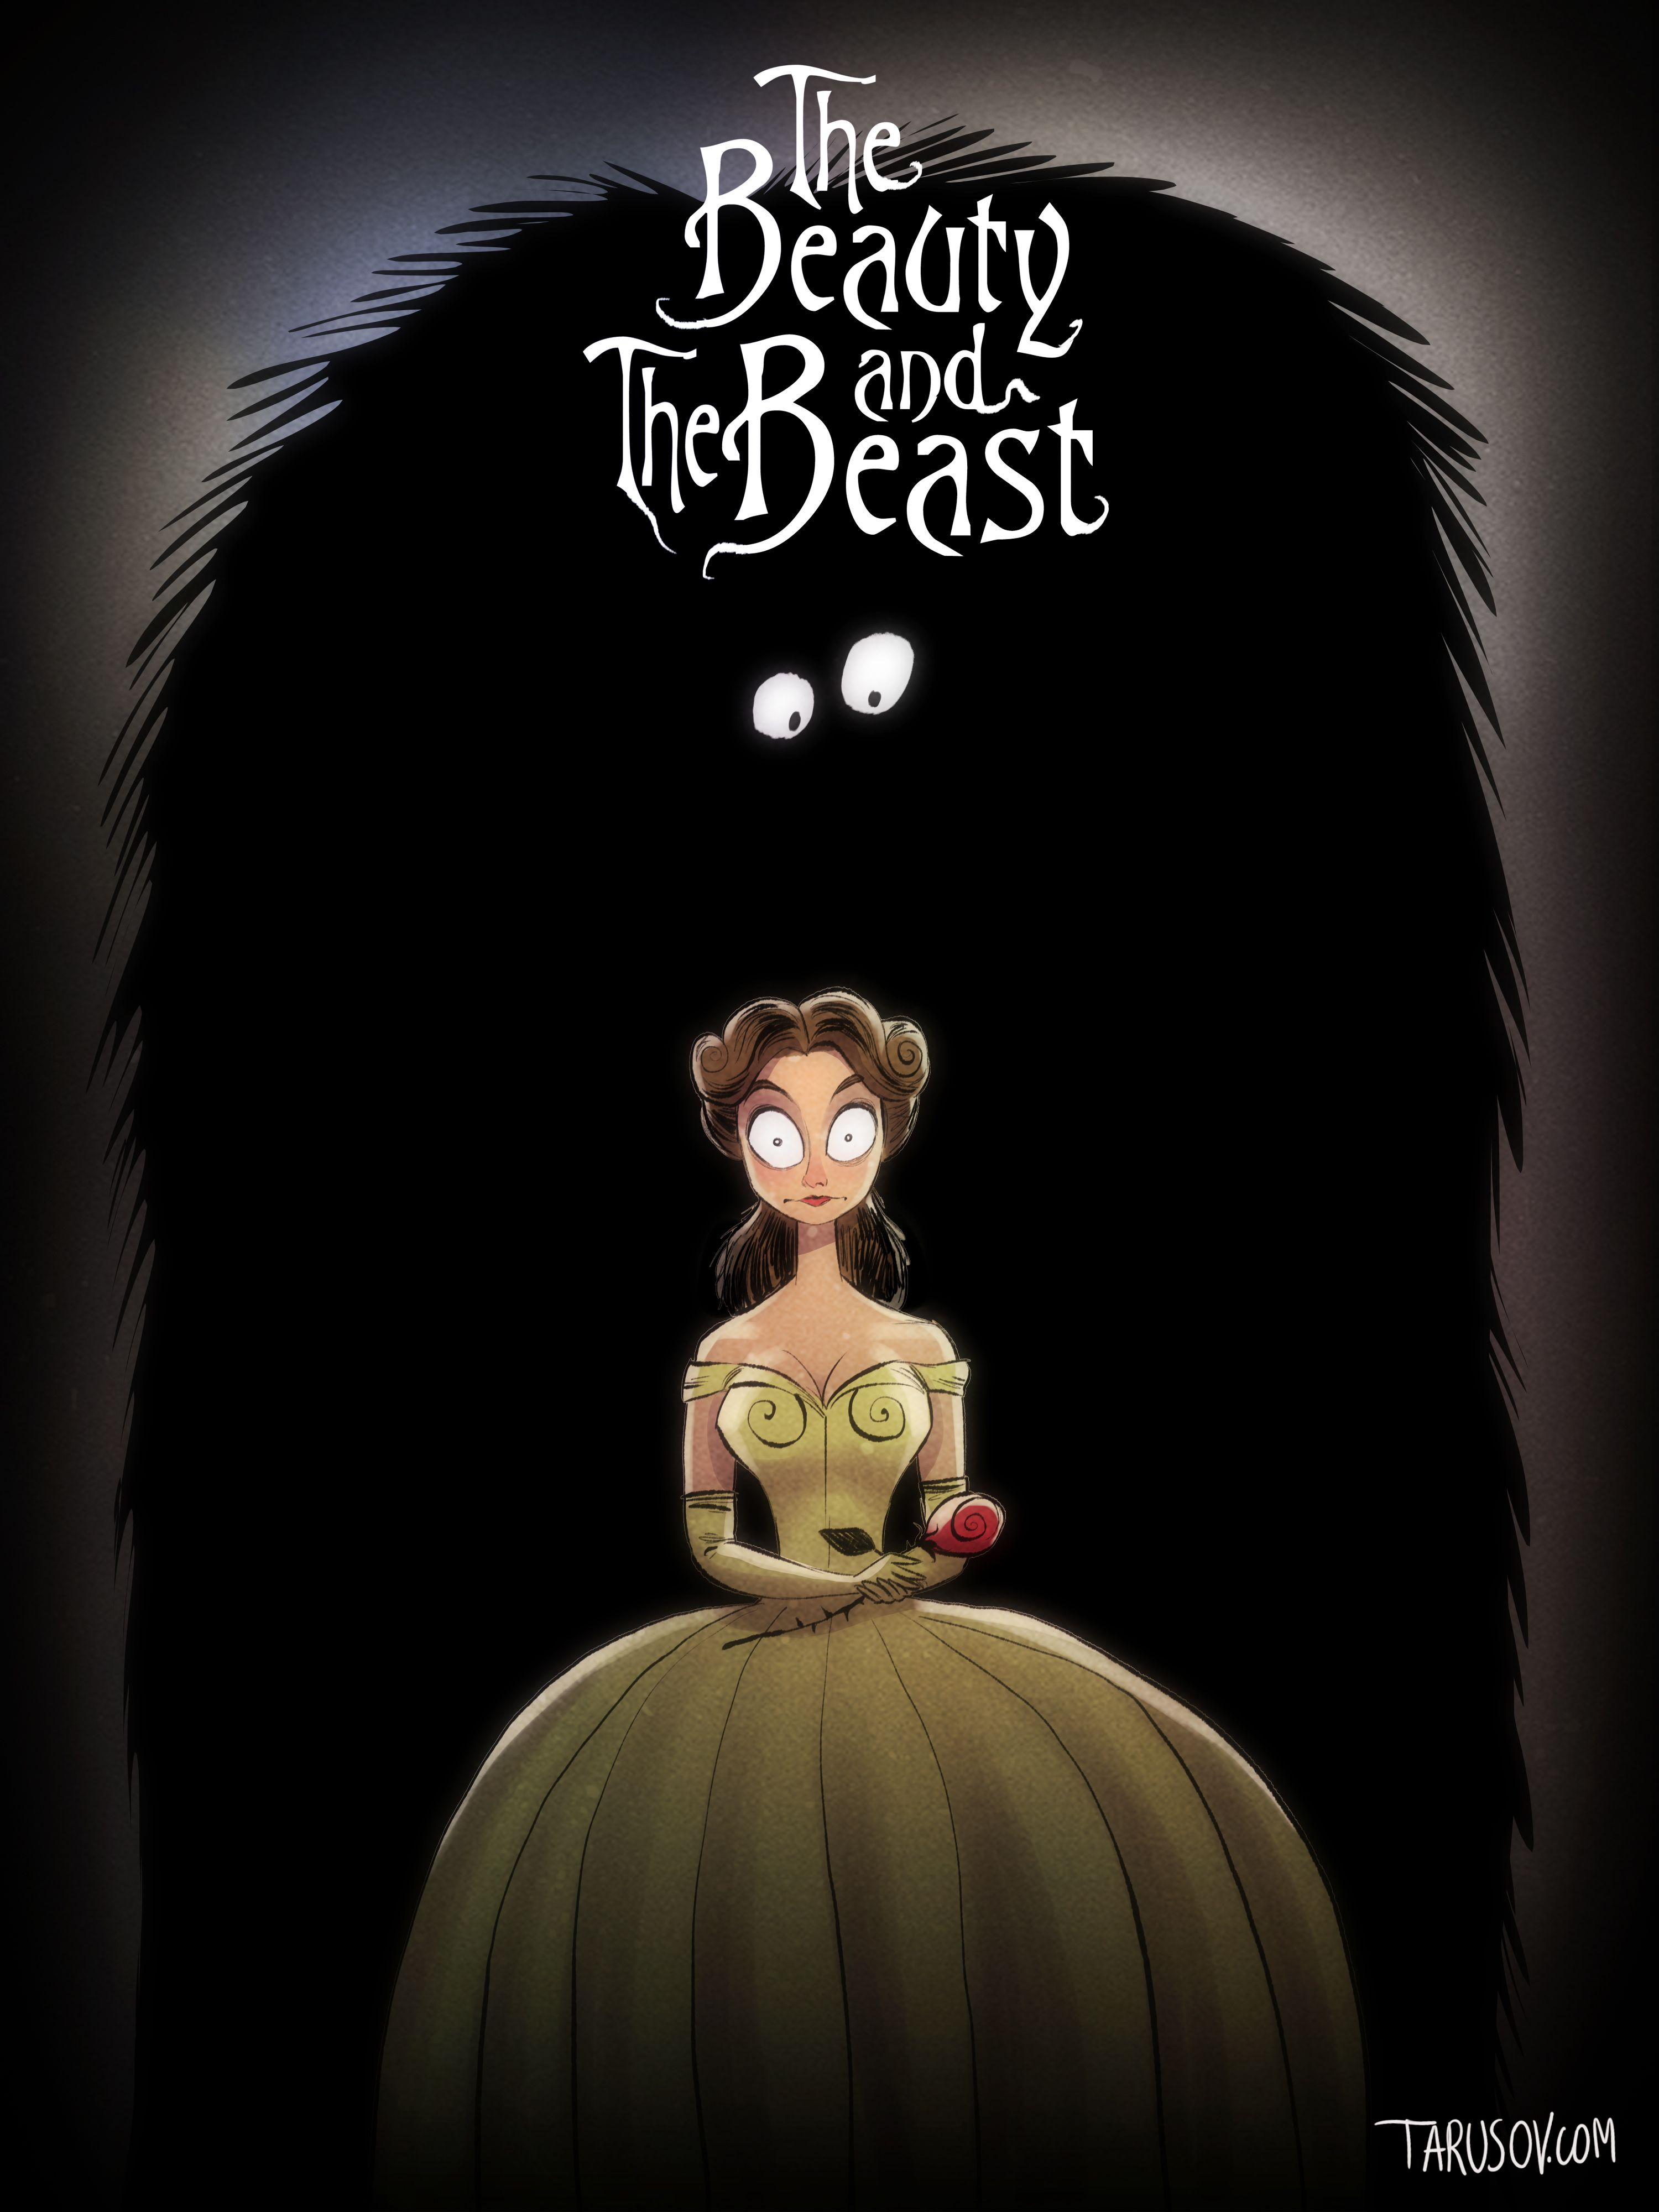 Disney Characters Drawn In The Style Of Director Tim Burton